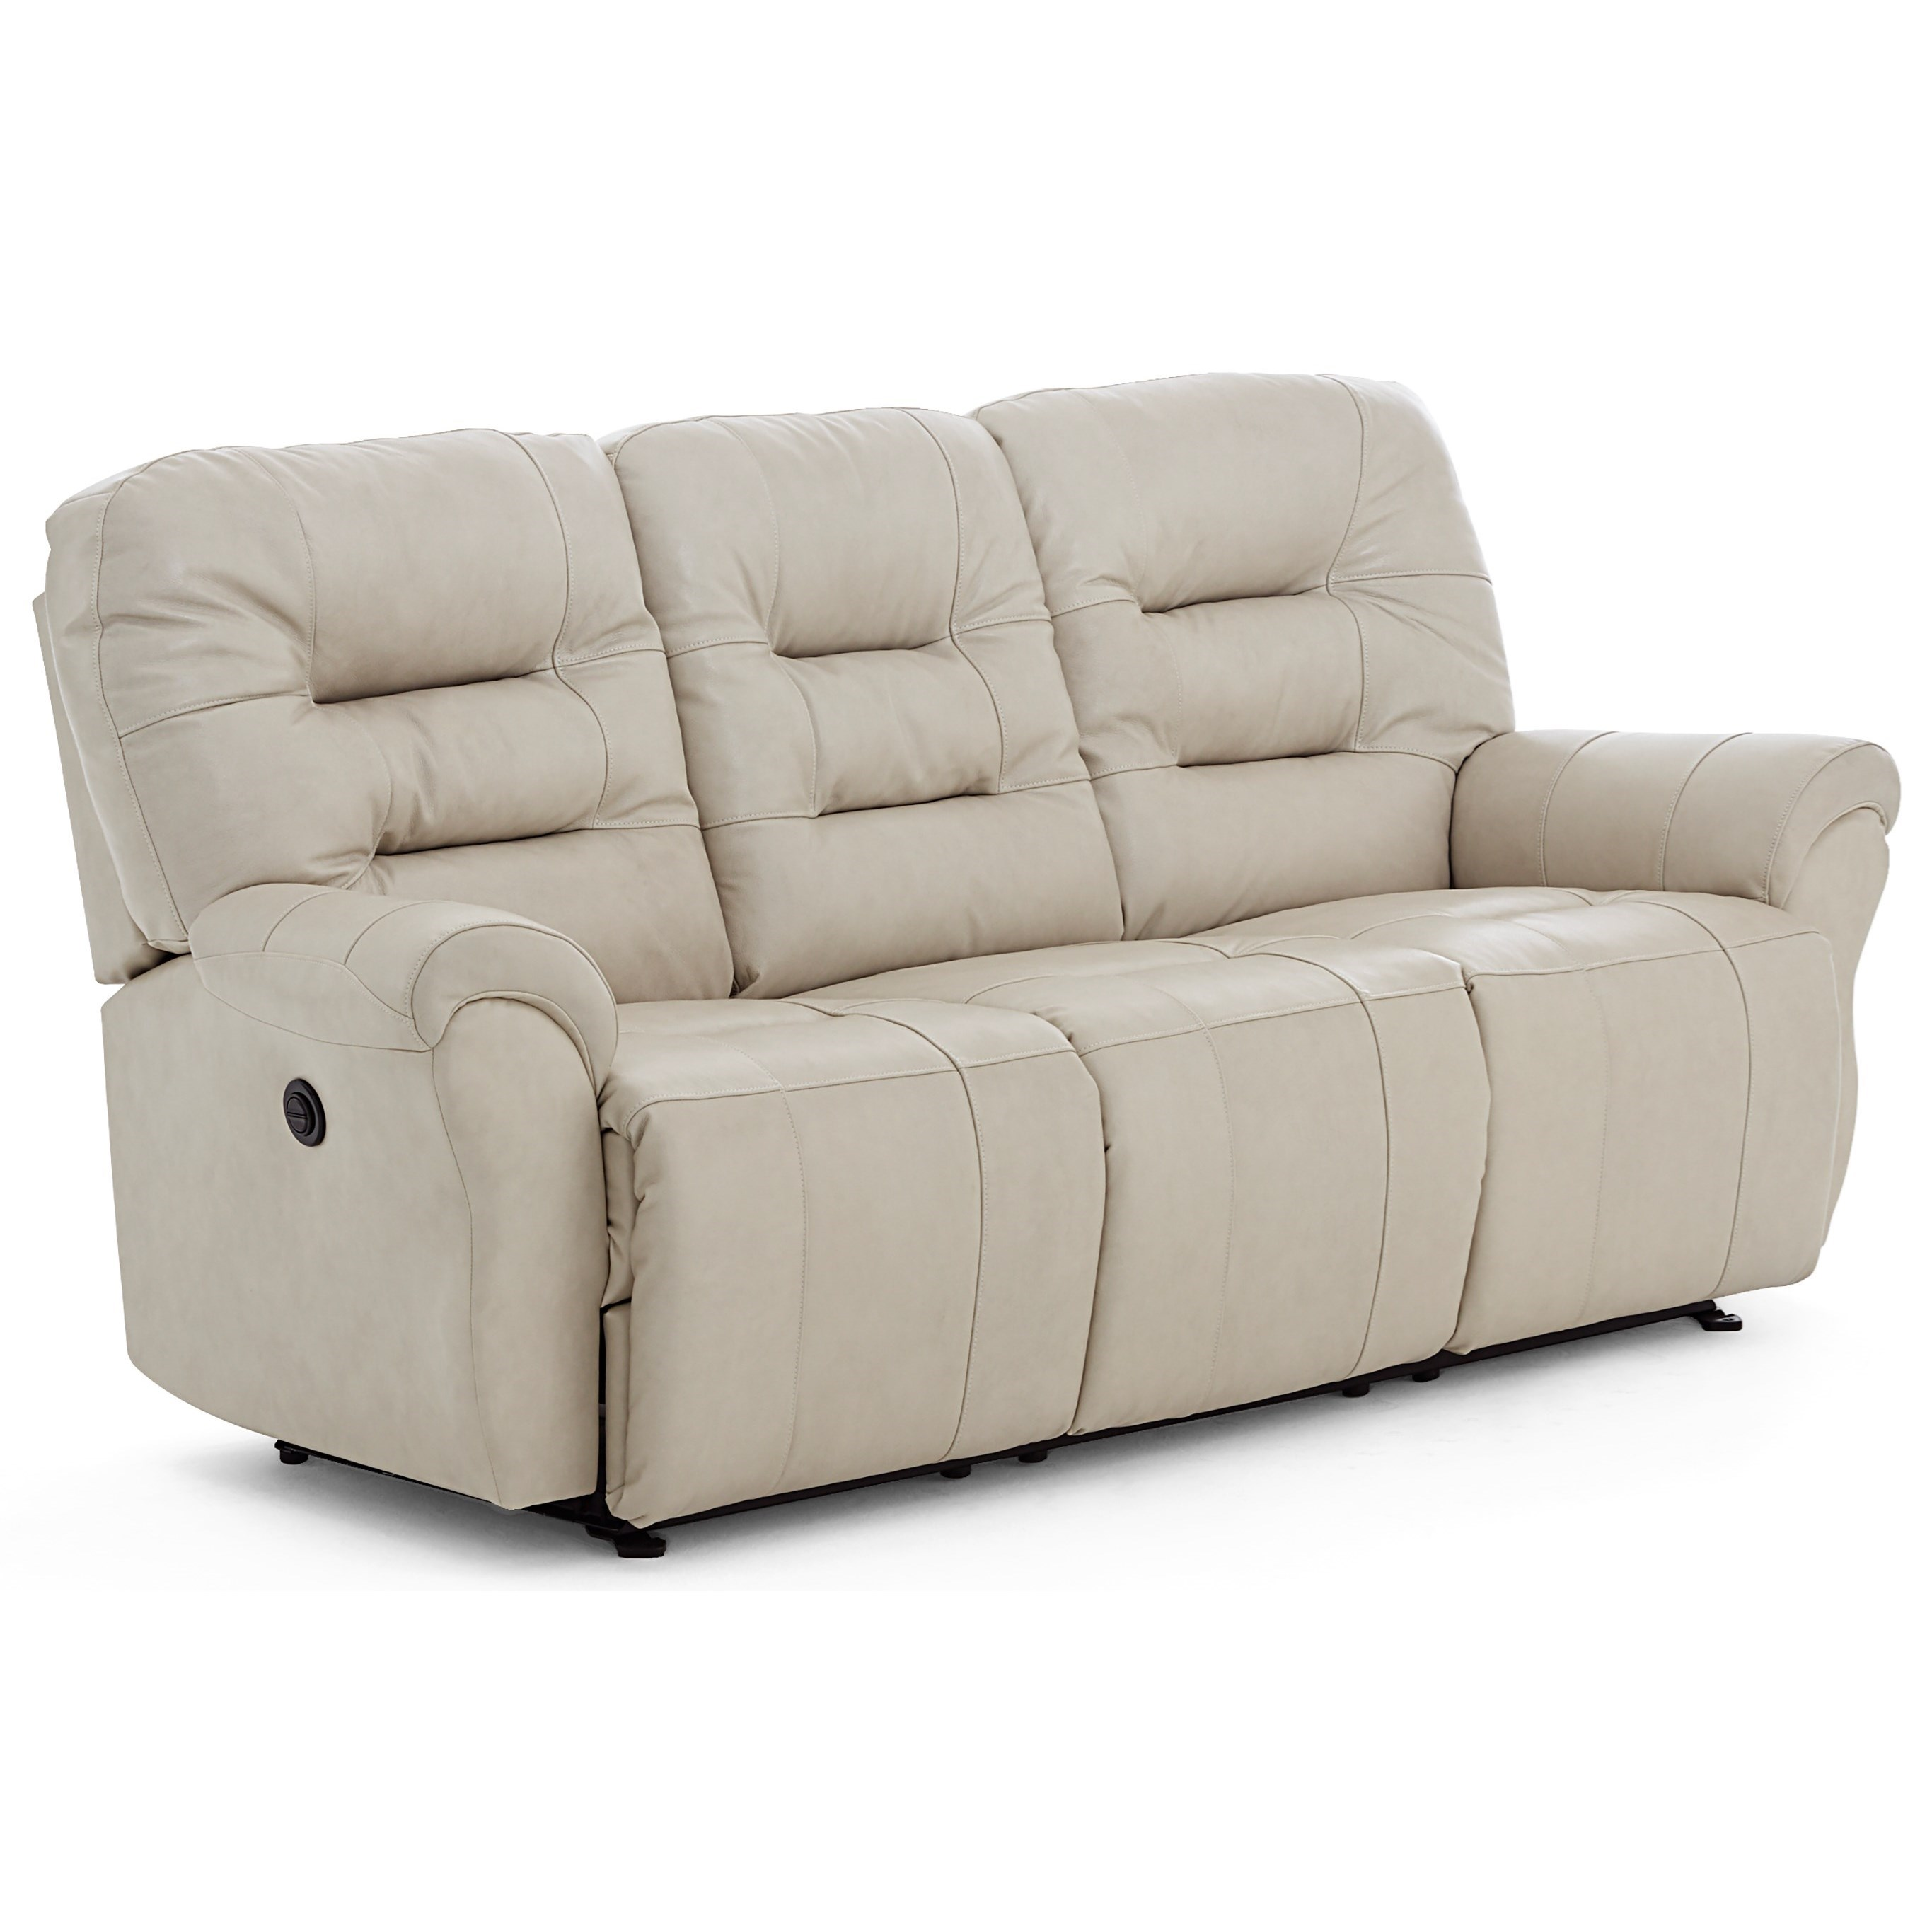 Unity Power Space Saver Sofa Chaise by Best Home Furnishings at Best Home Furnishings